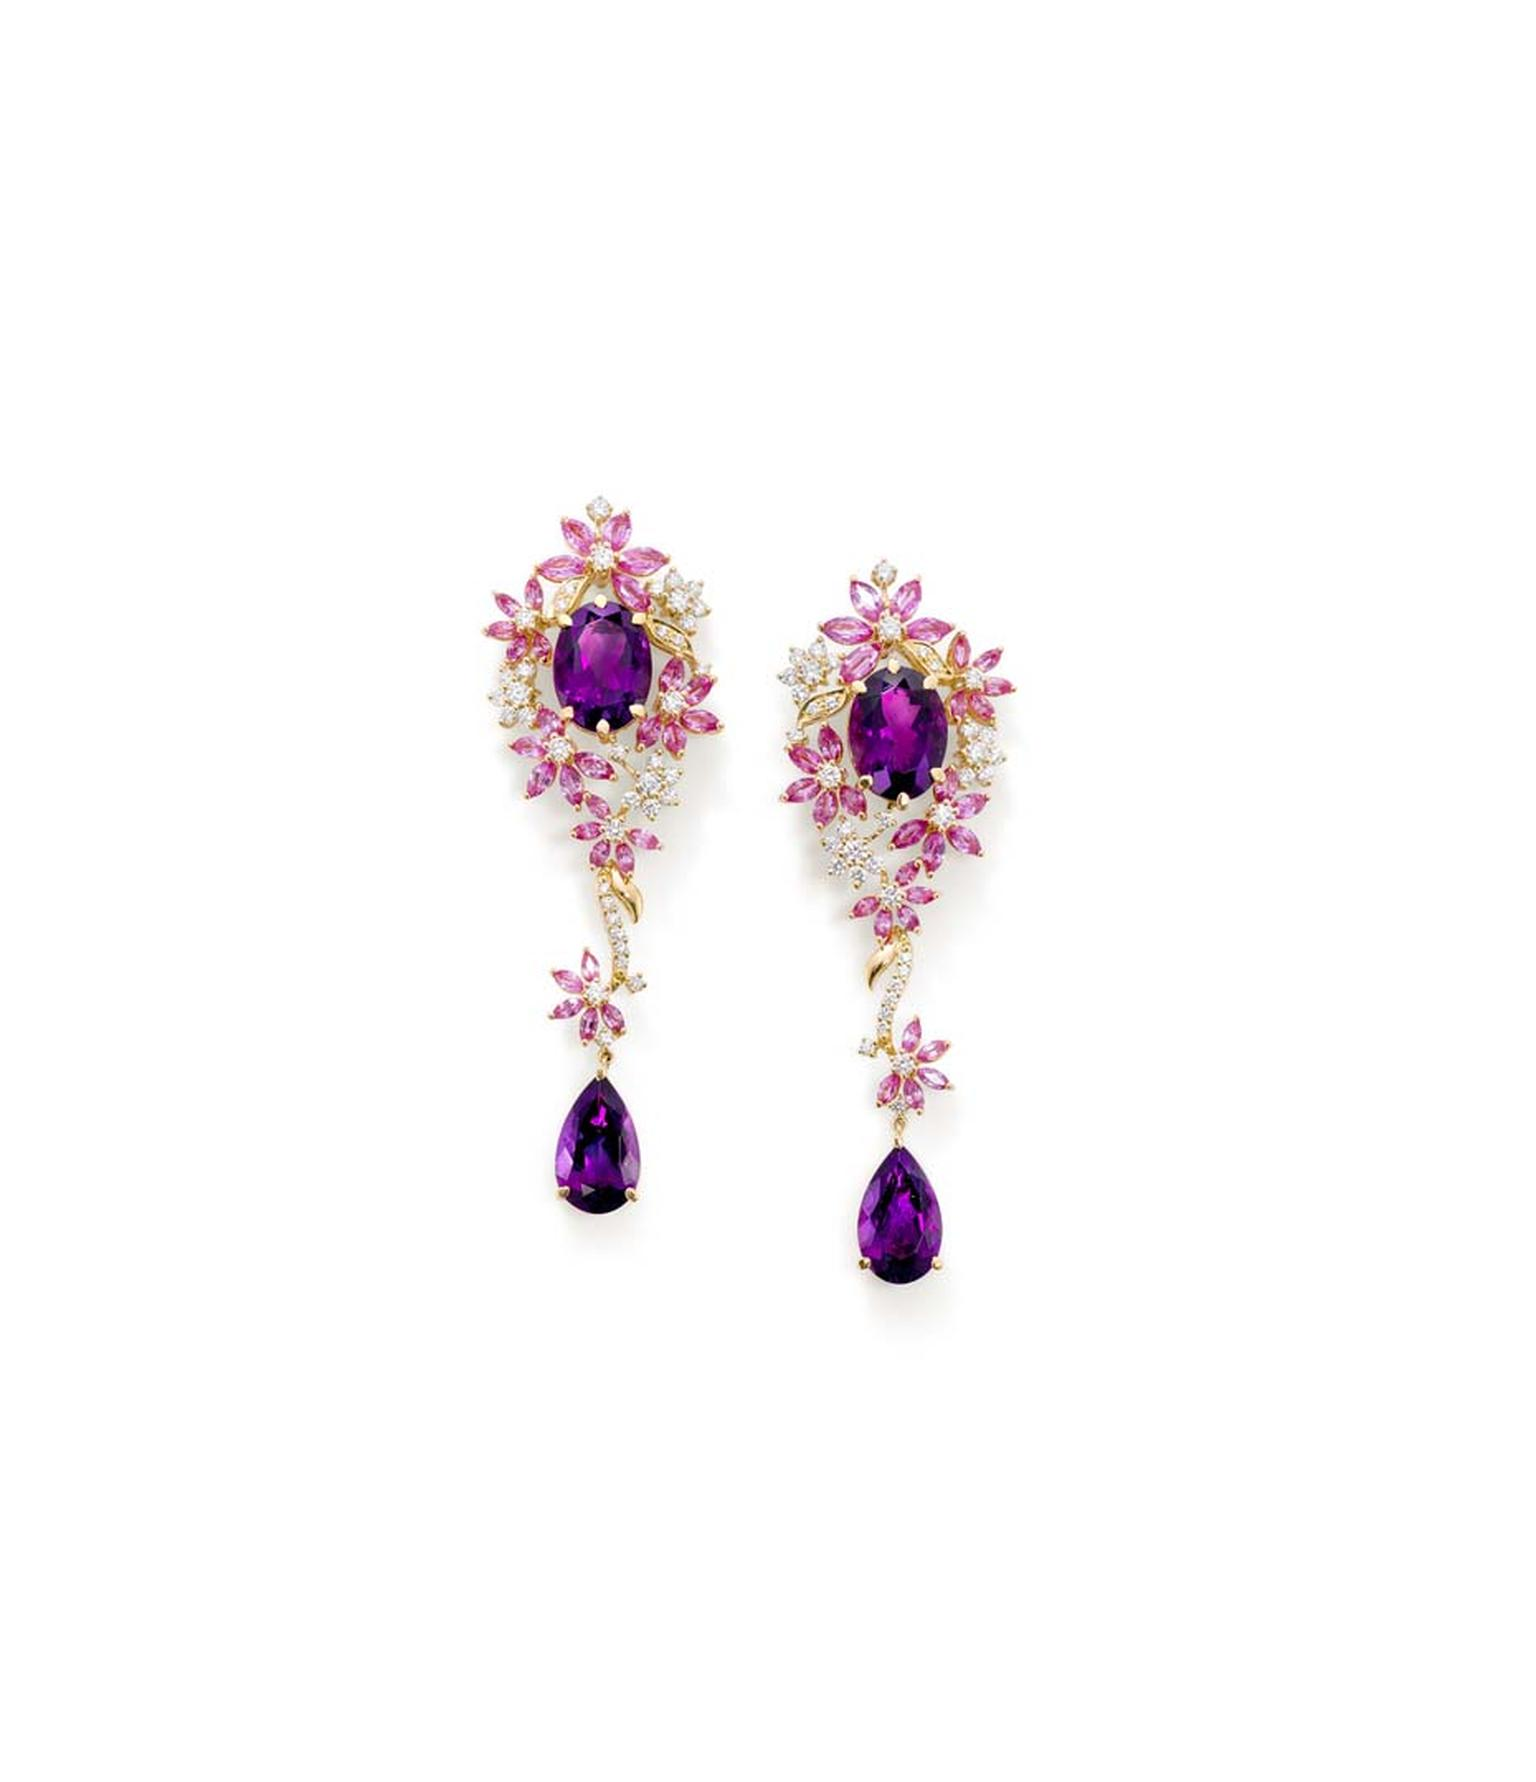 Ganjam 'Le Jardin' collection earrings set with oval and drop amethysts and pink sapphire flowers, interspersed with diamonds.